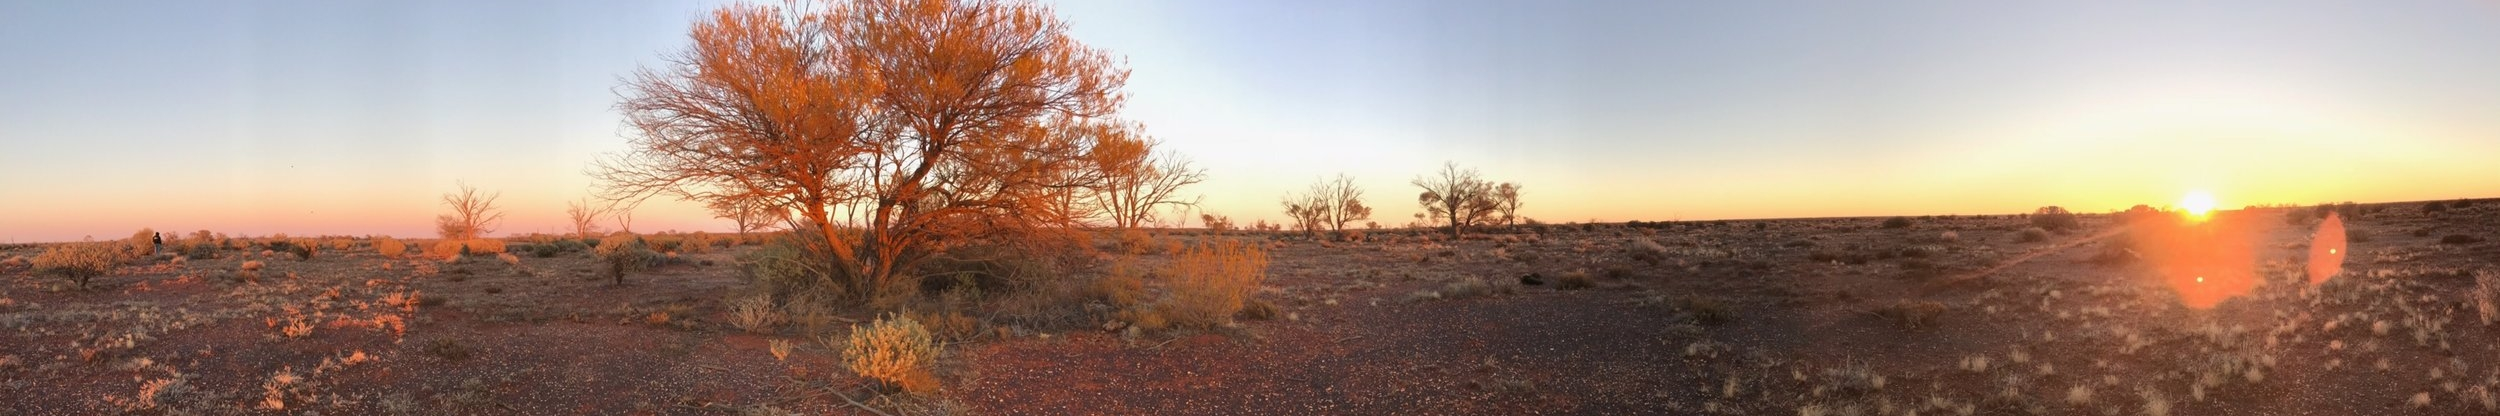 Australian Outback - There is always hope !